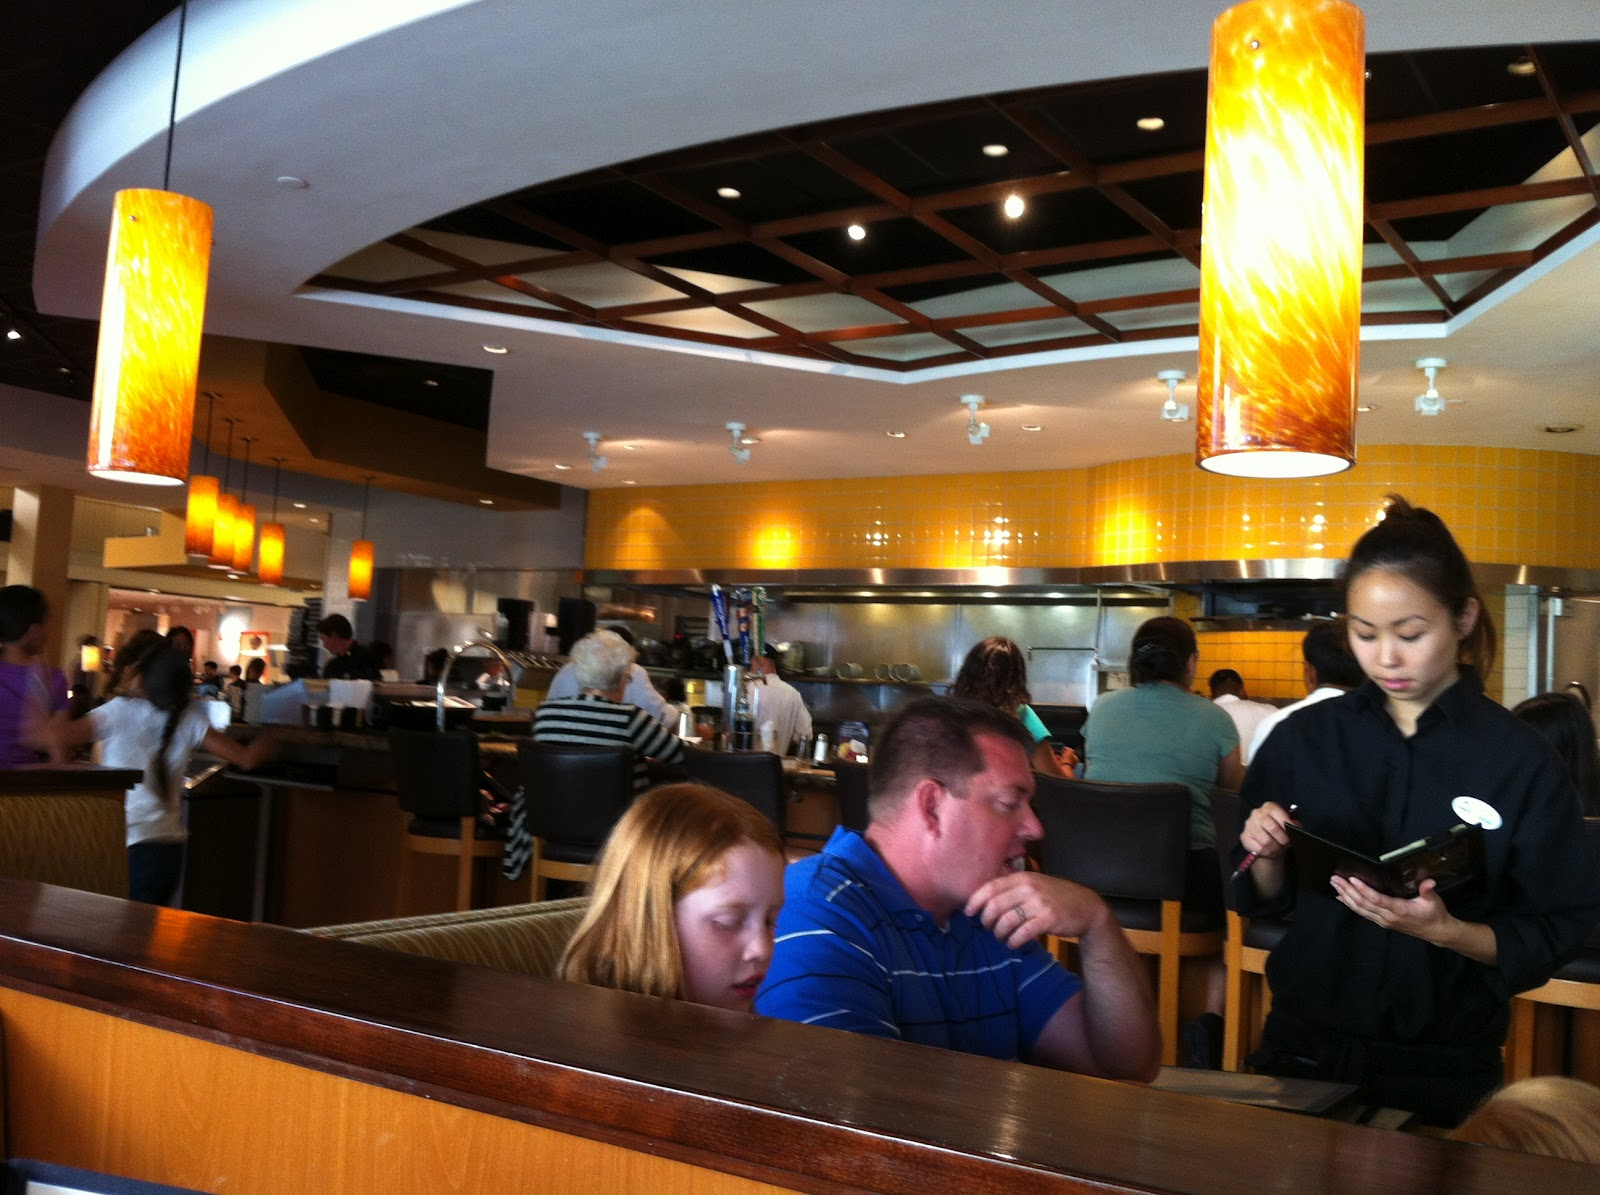 taste of hawaii: california pizza kitchen - kahala mall